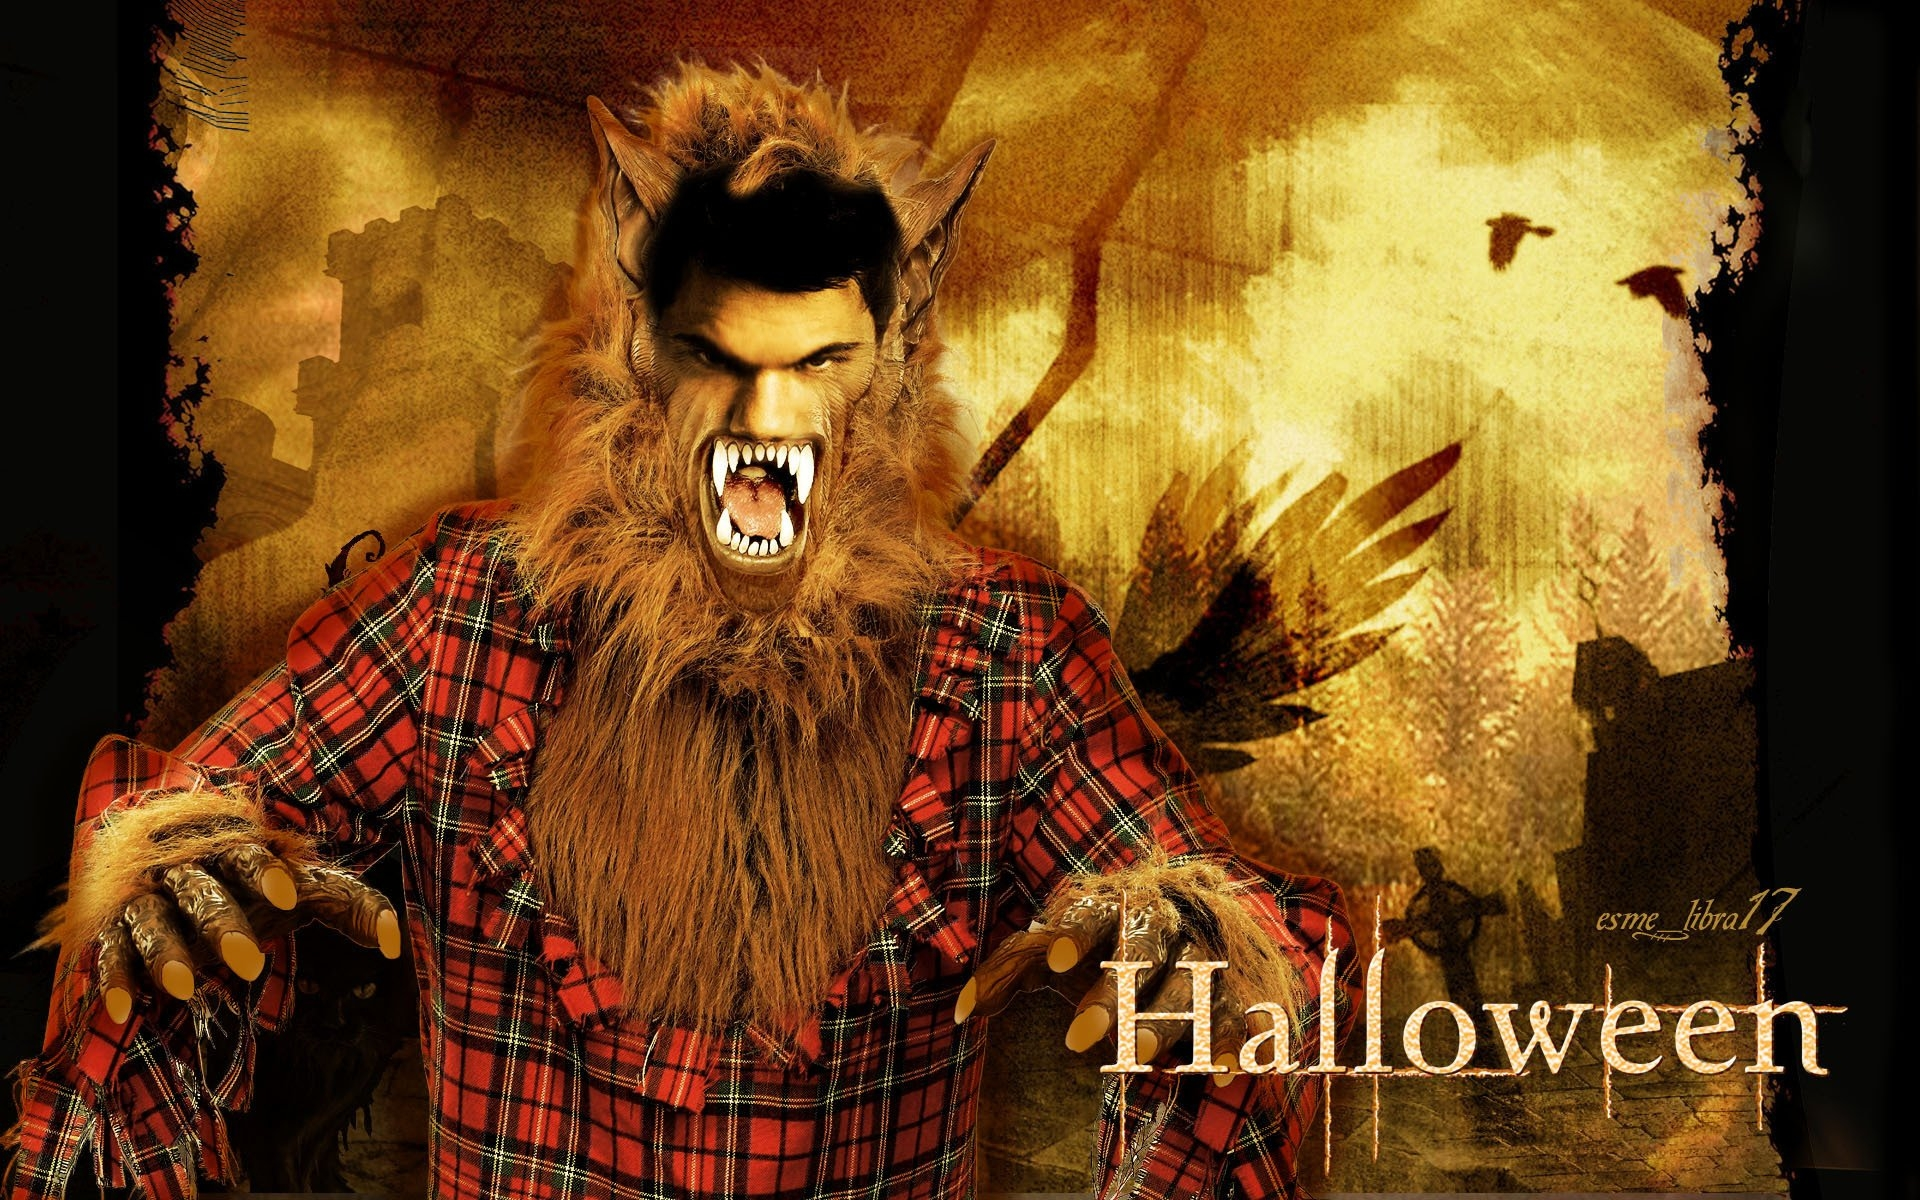 happy-halloween-twilight-cast-twilight-series-8815747-1920-1200 - сумреки обои